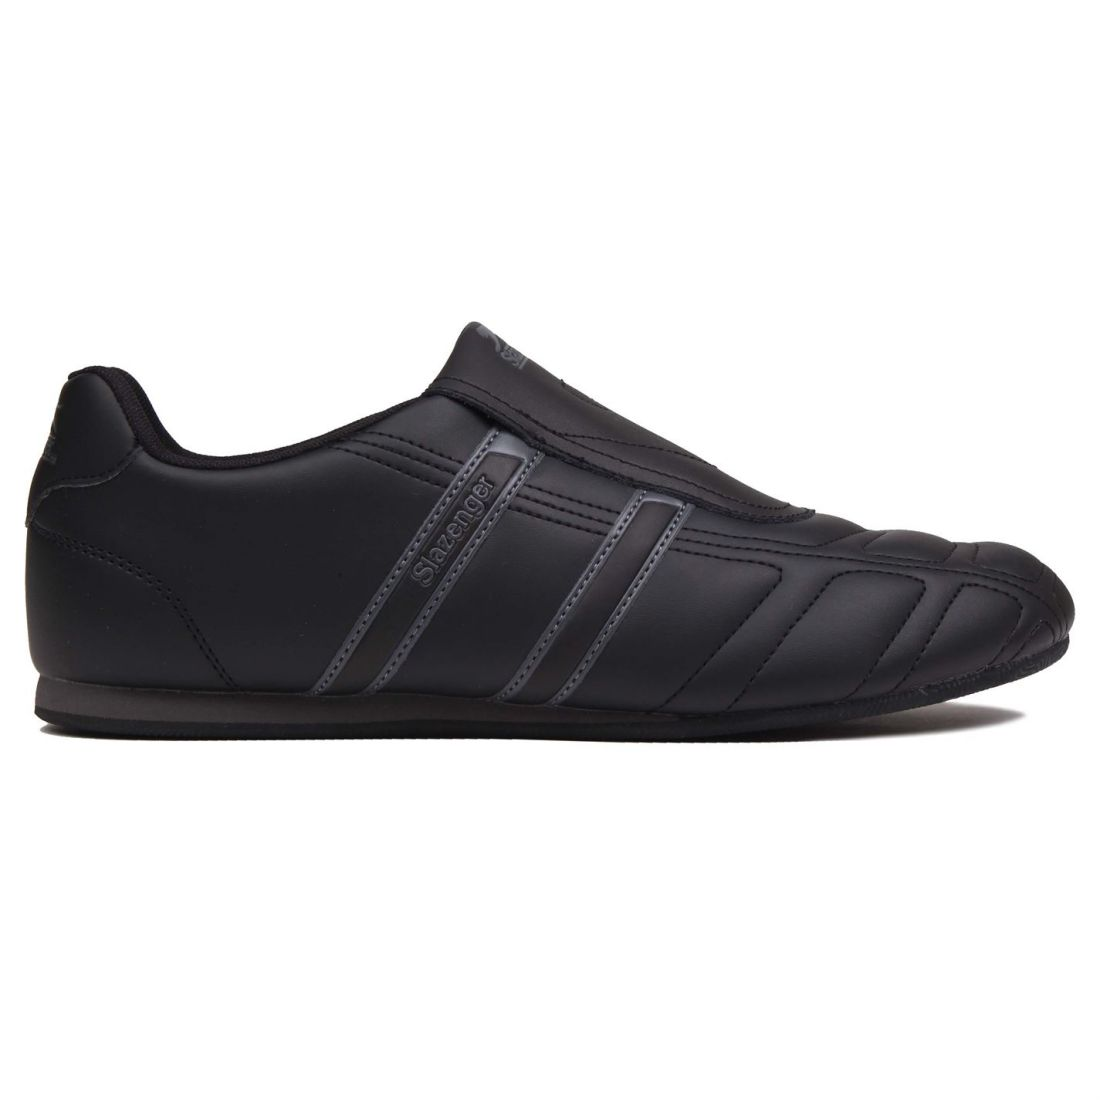 Details about Slazenger Mens Warrior Fashion Trainers Slip On Leather Sports Shoes Footwear